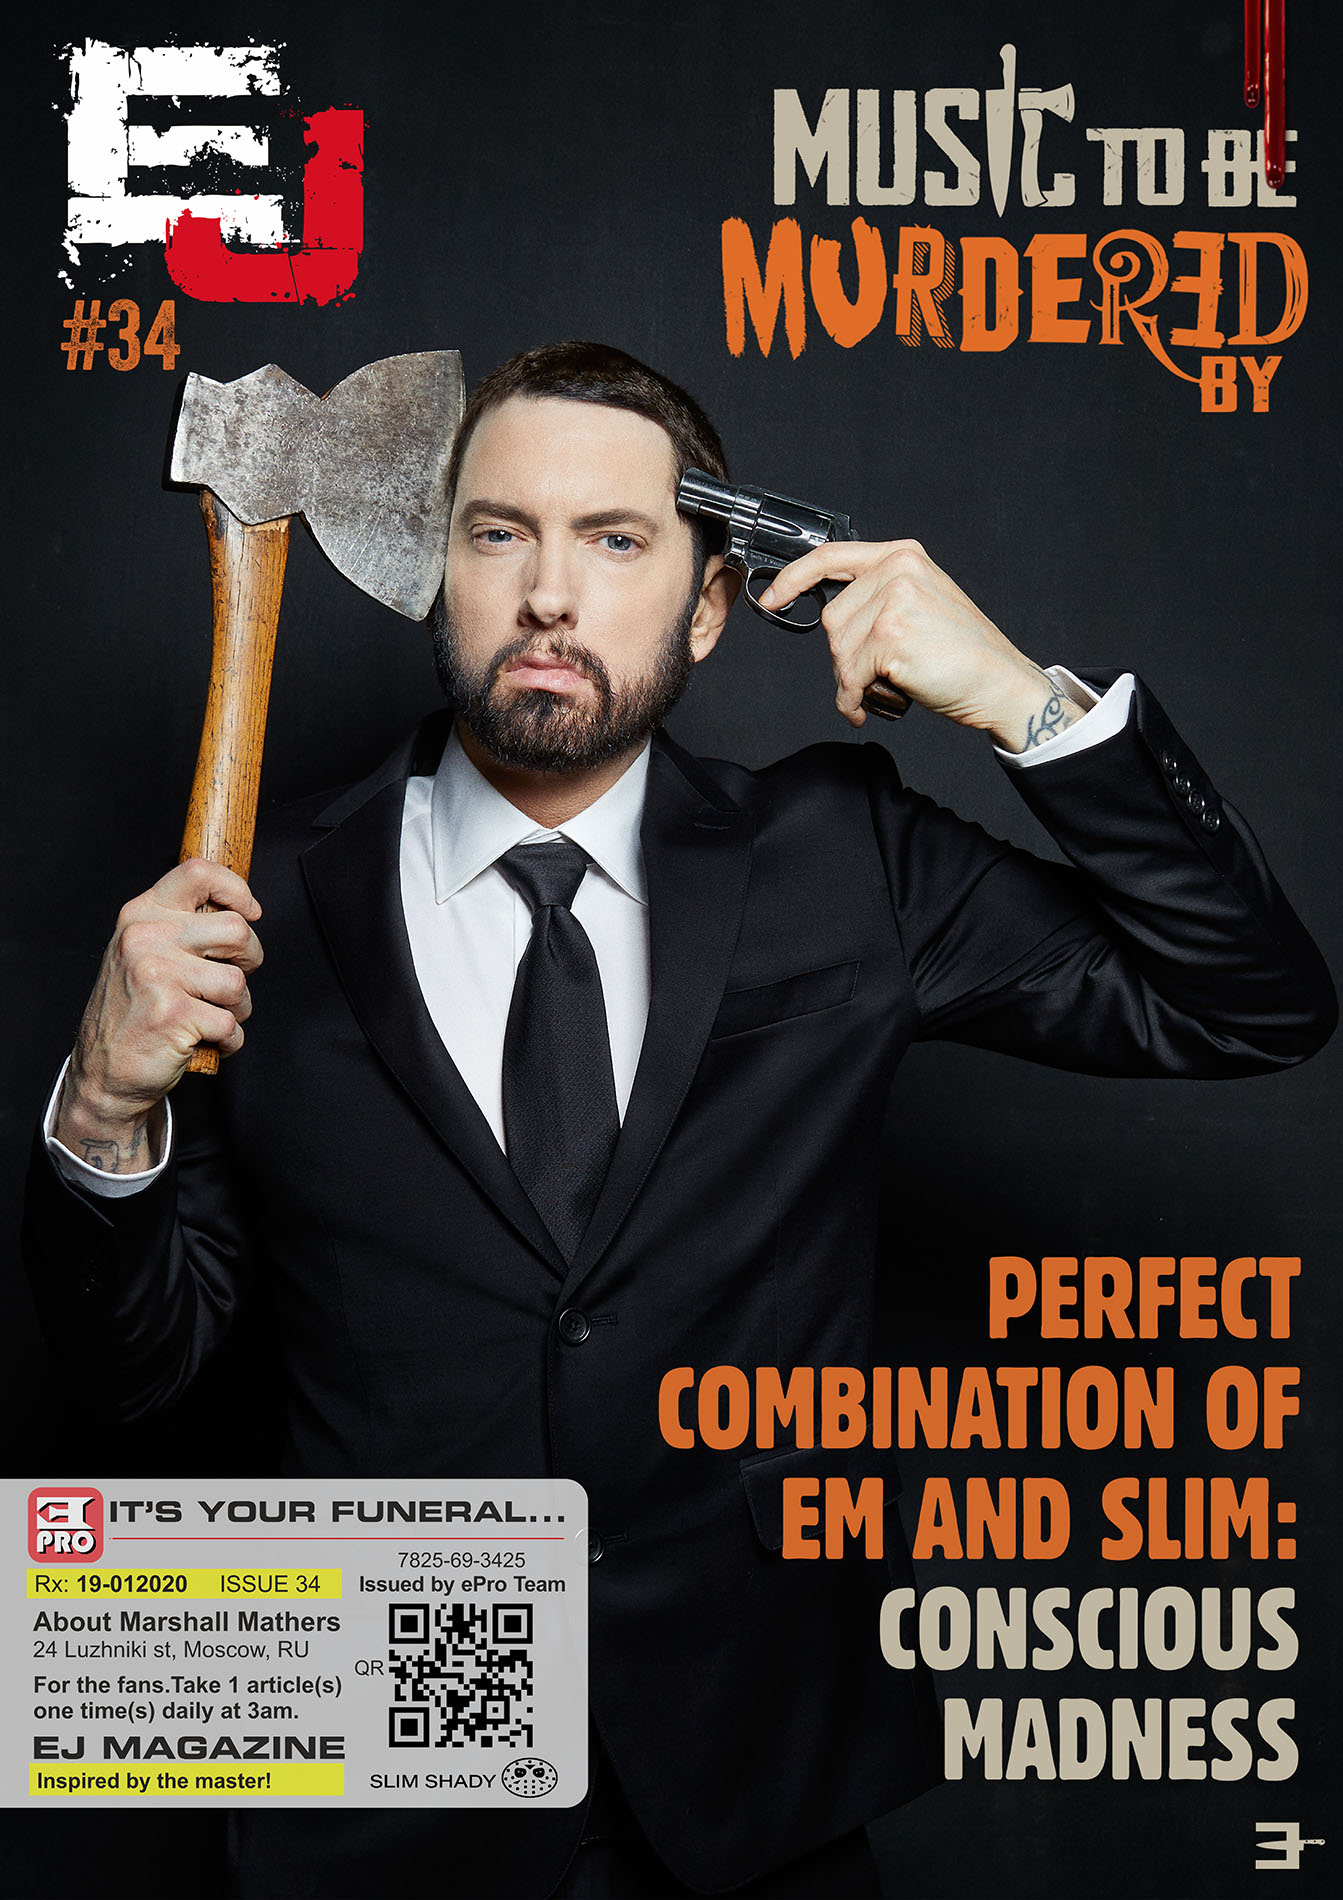 EJ Magazine #34 Available. Now. It's your funeral...